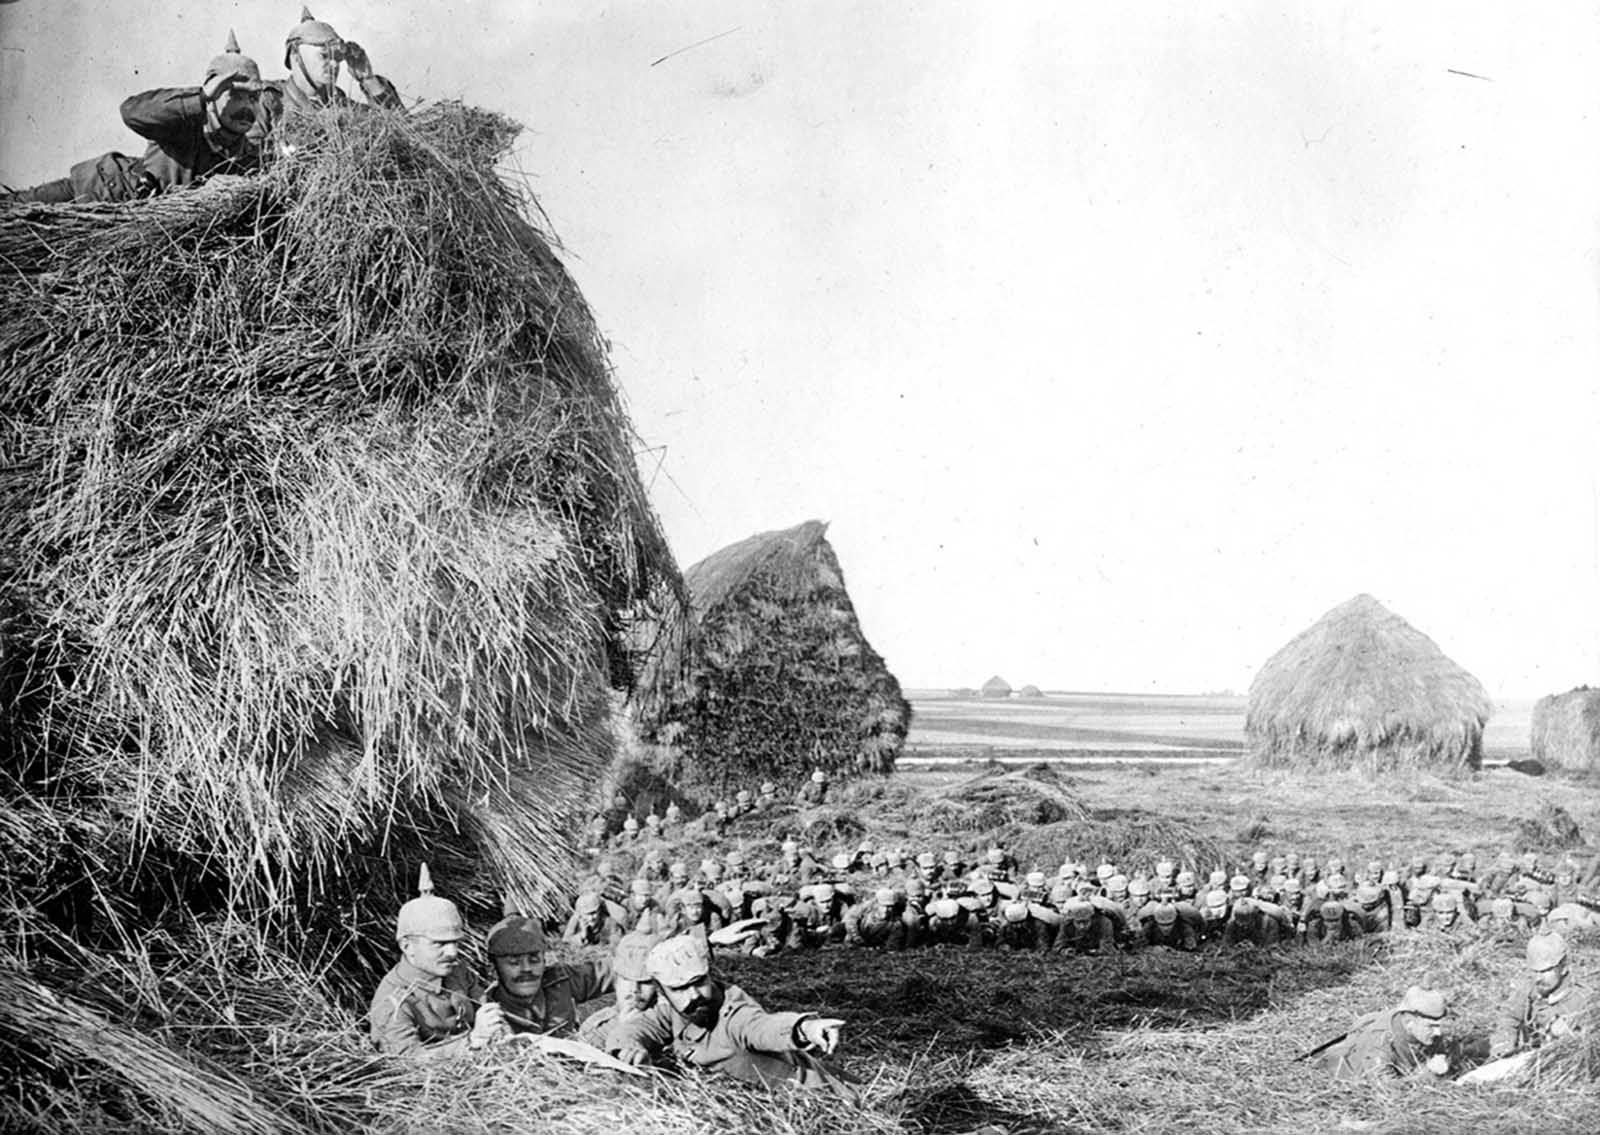 German soldiers make observations from atop, beneath, and behind large haystacks in southwest Belgium, ca. 1915.